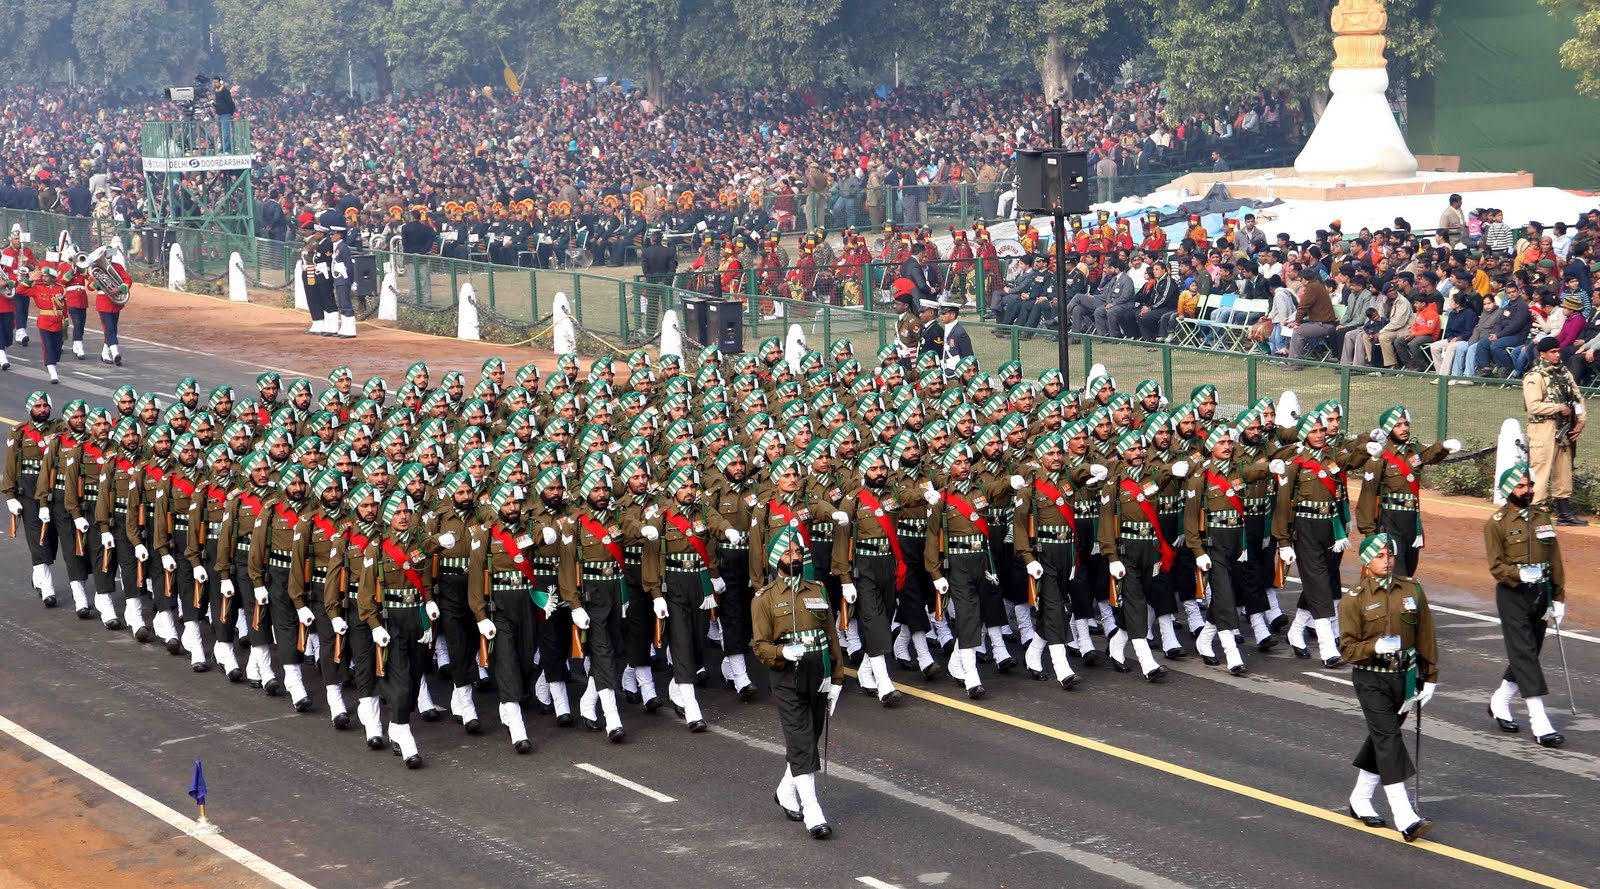 Republic-Day-Parade-HD-Wallpaper-Images-2015